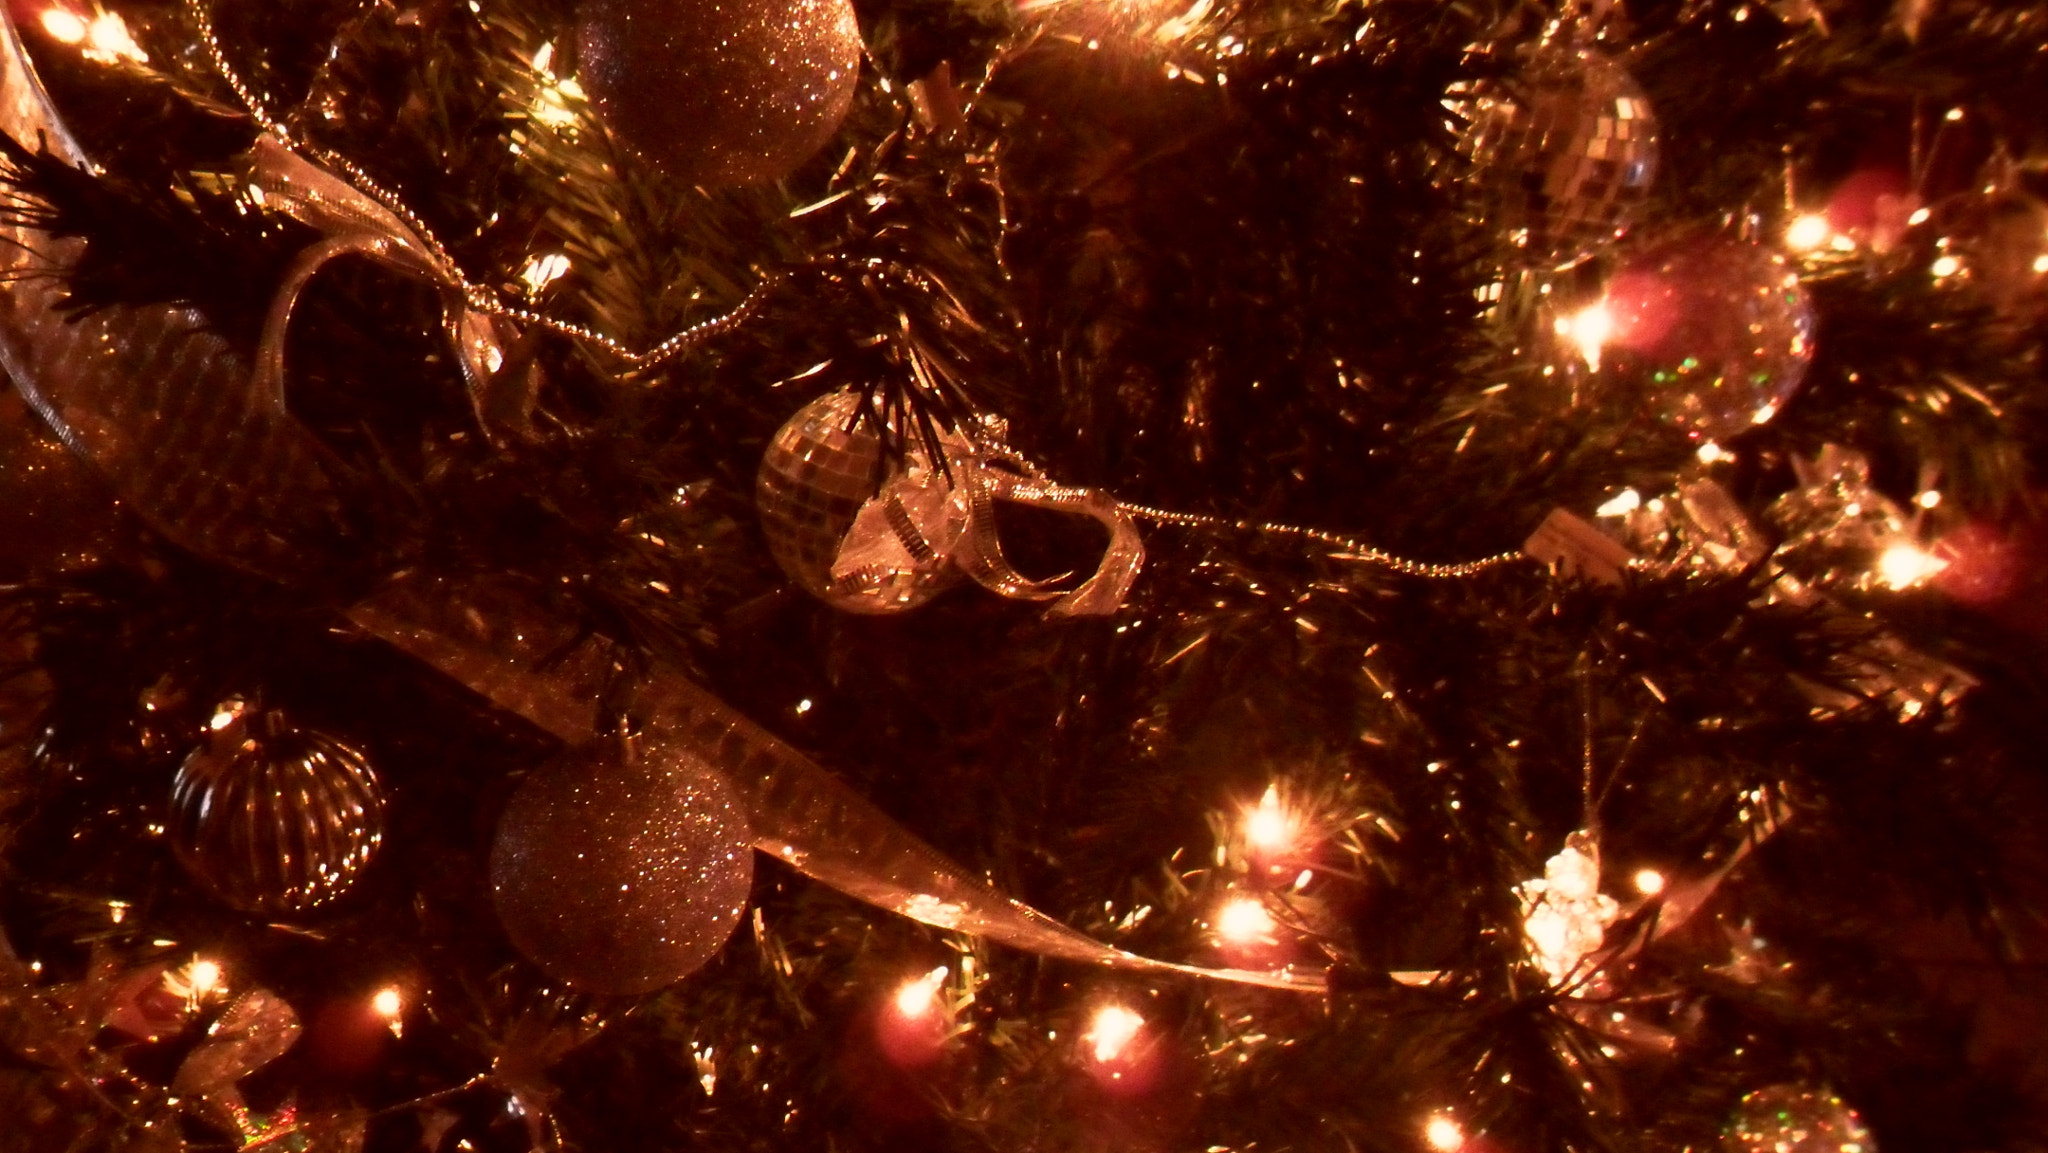 Photograph My Christmas Tree by Lilian de Oliveira on 500px